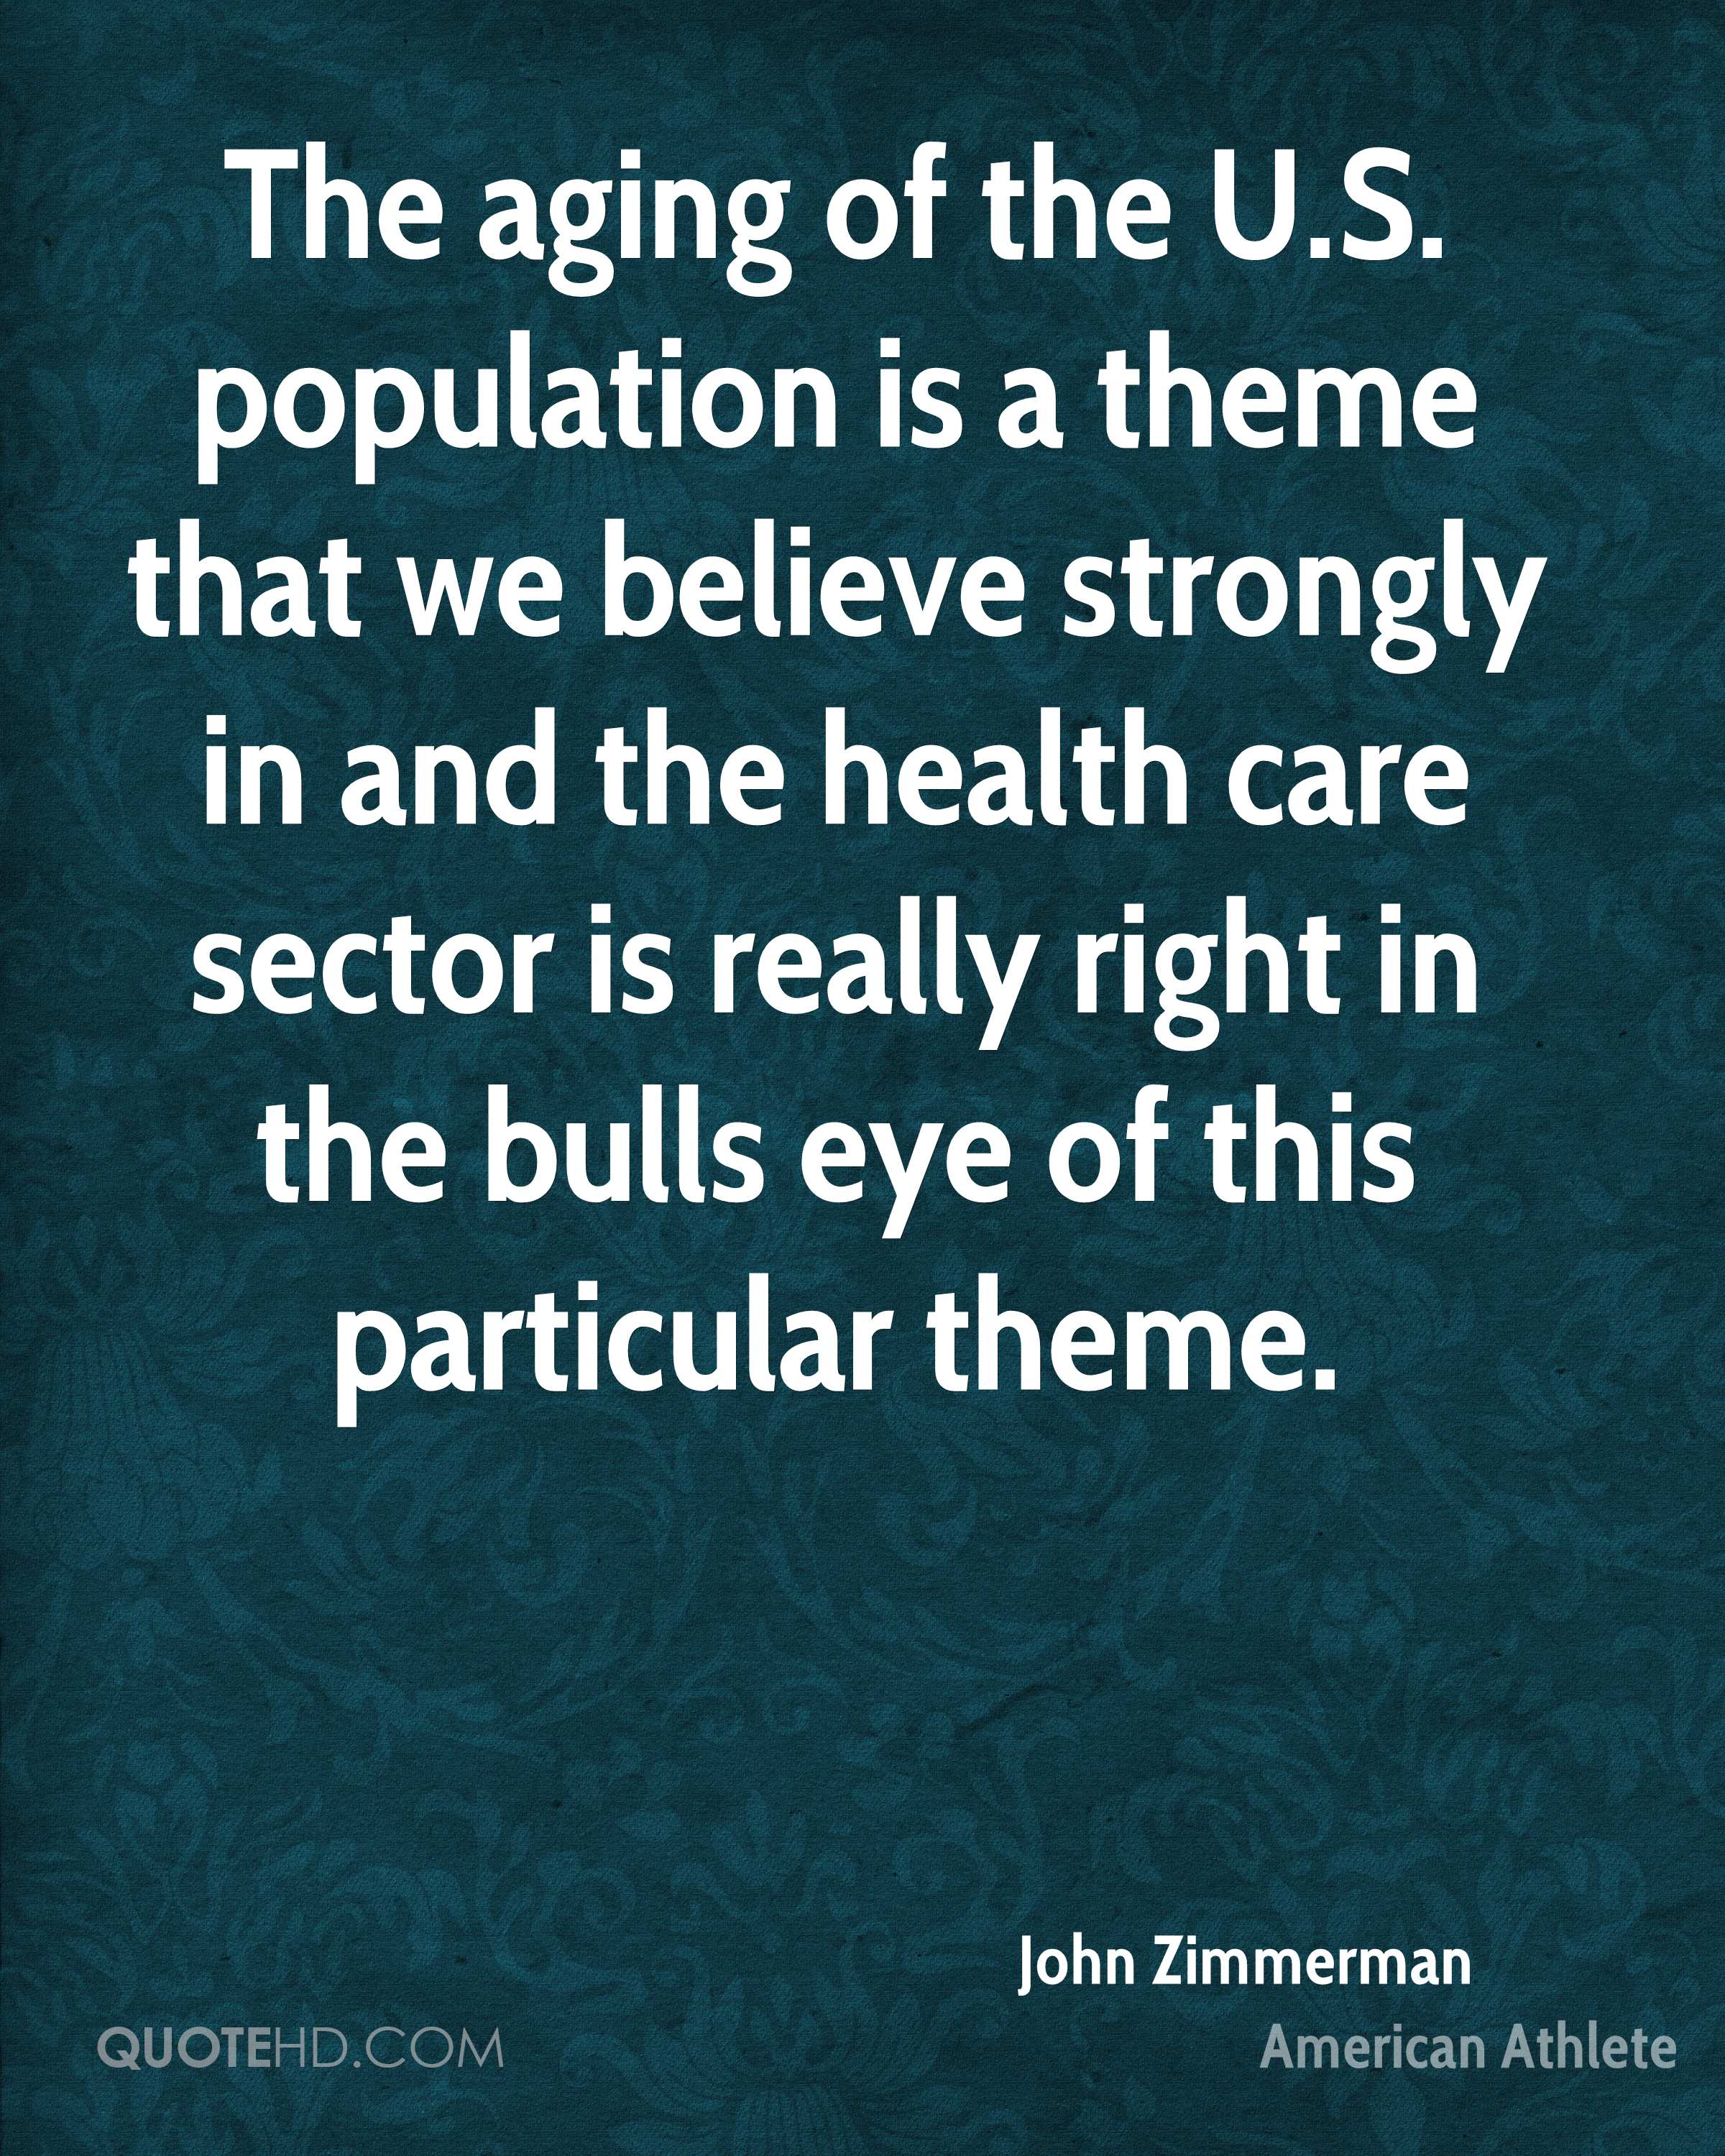 The aging of the U.S. population is a theme that we believe strongly in and the health care sector is really right in the bulls eye of this particular theme.